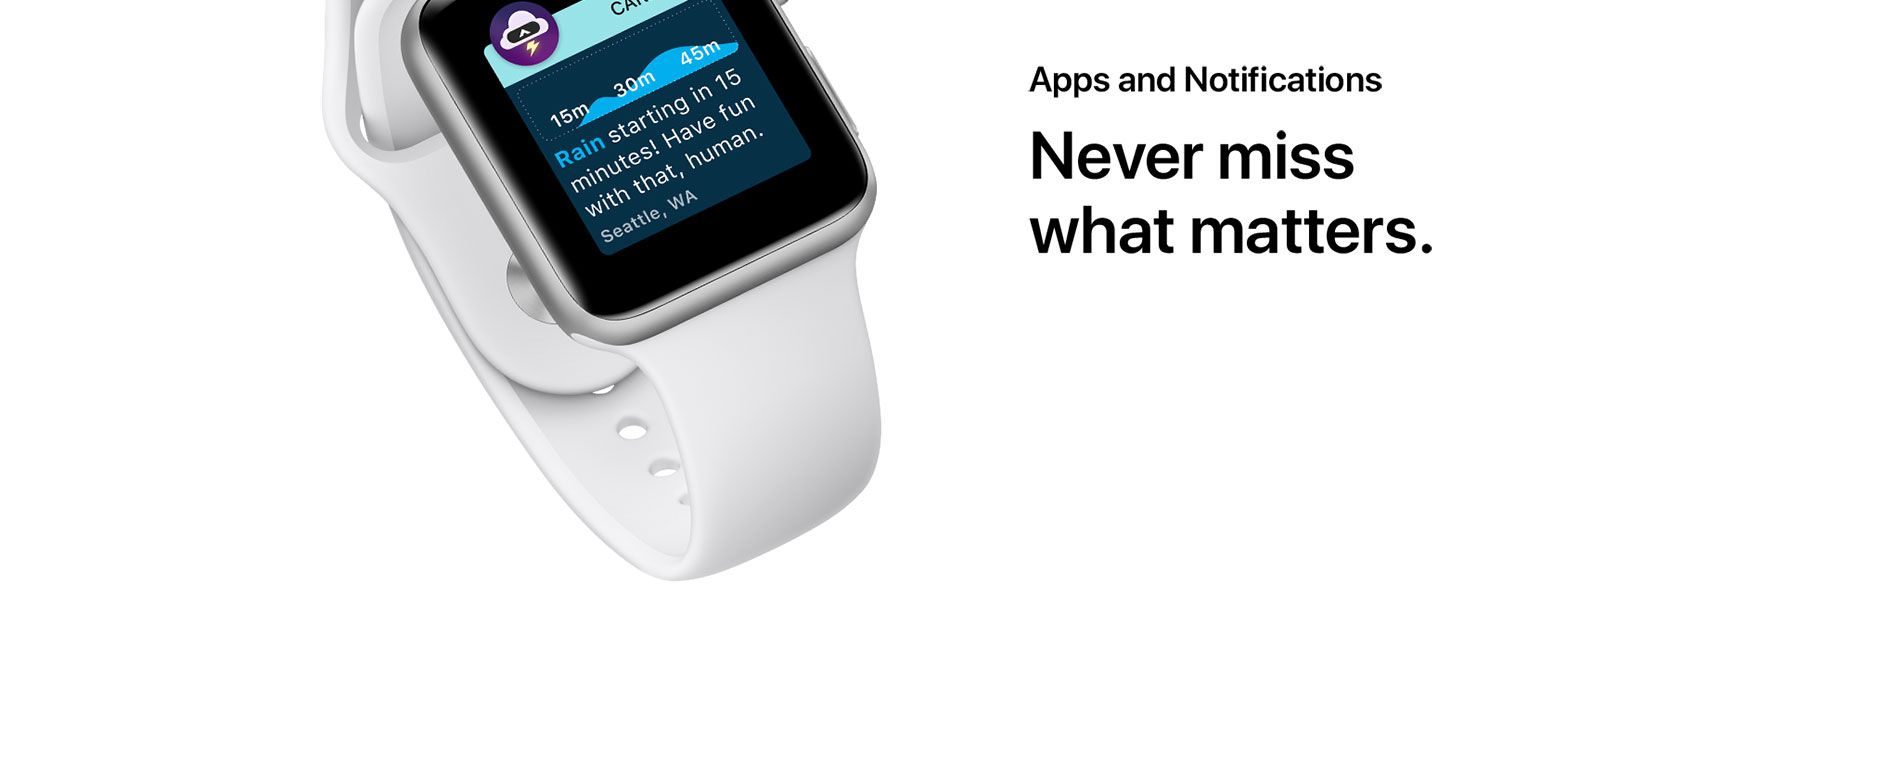 Apps and Notifications - Never miss what matters.